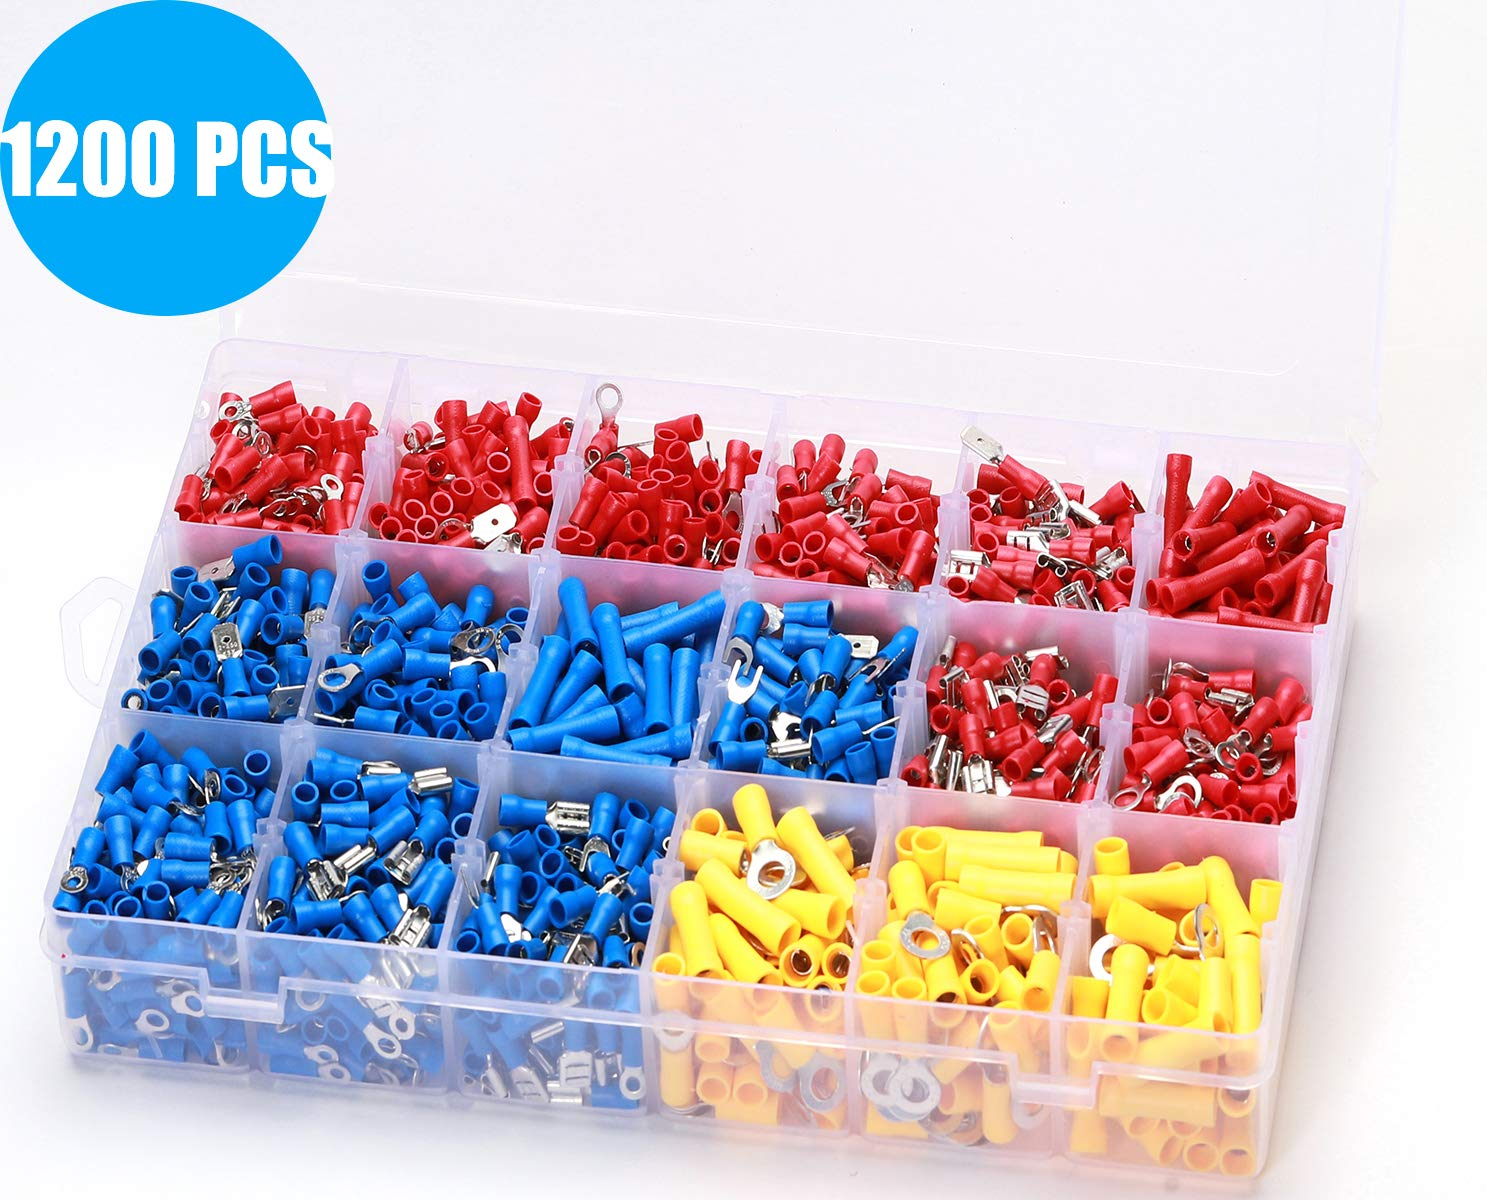 1200PCS Wire Connectors Insulated Electrical Wire Terminals Elibbren Insulated Wiring Terminals Crimp Connector Terminal Assortment Kit for Automotive